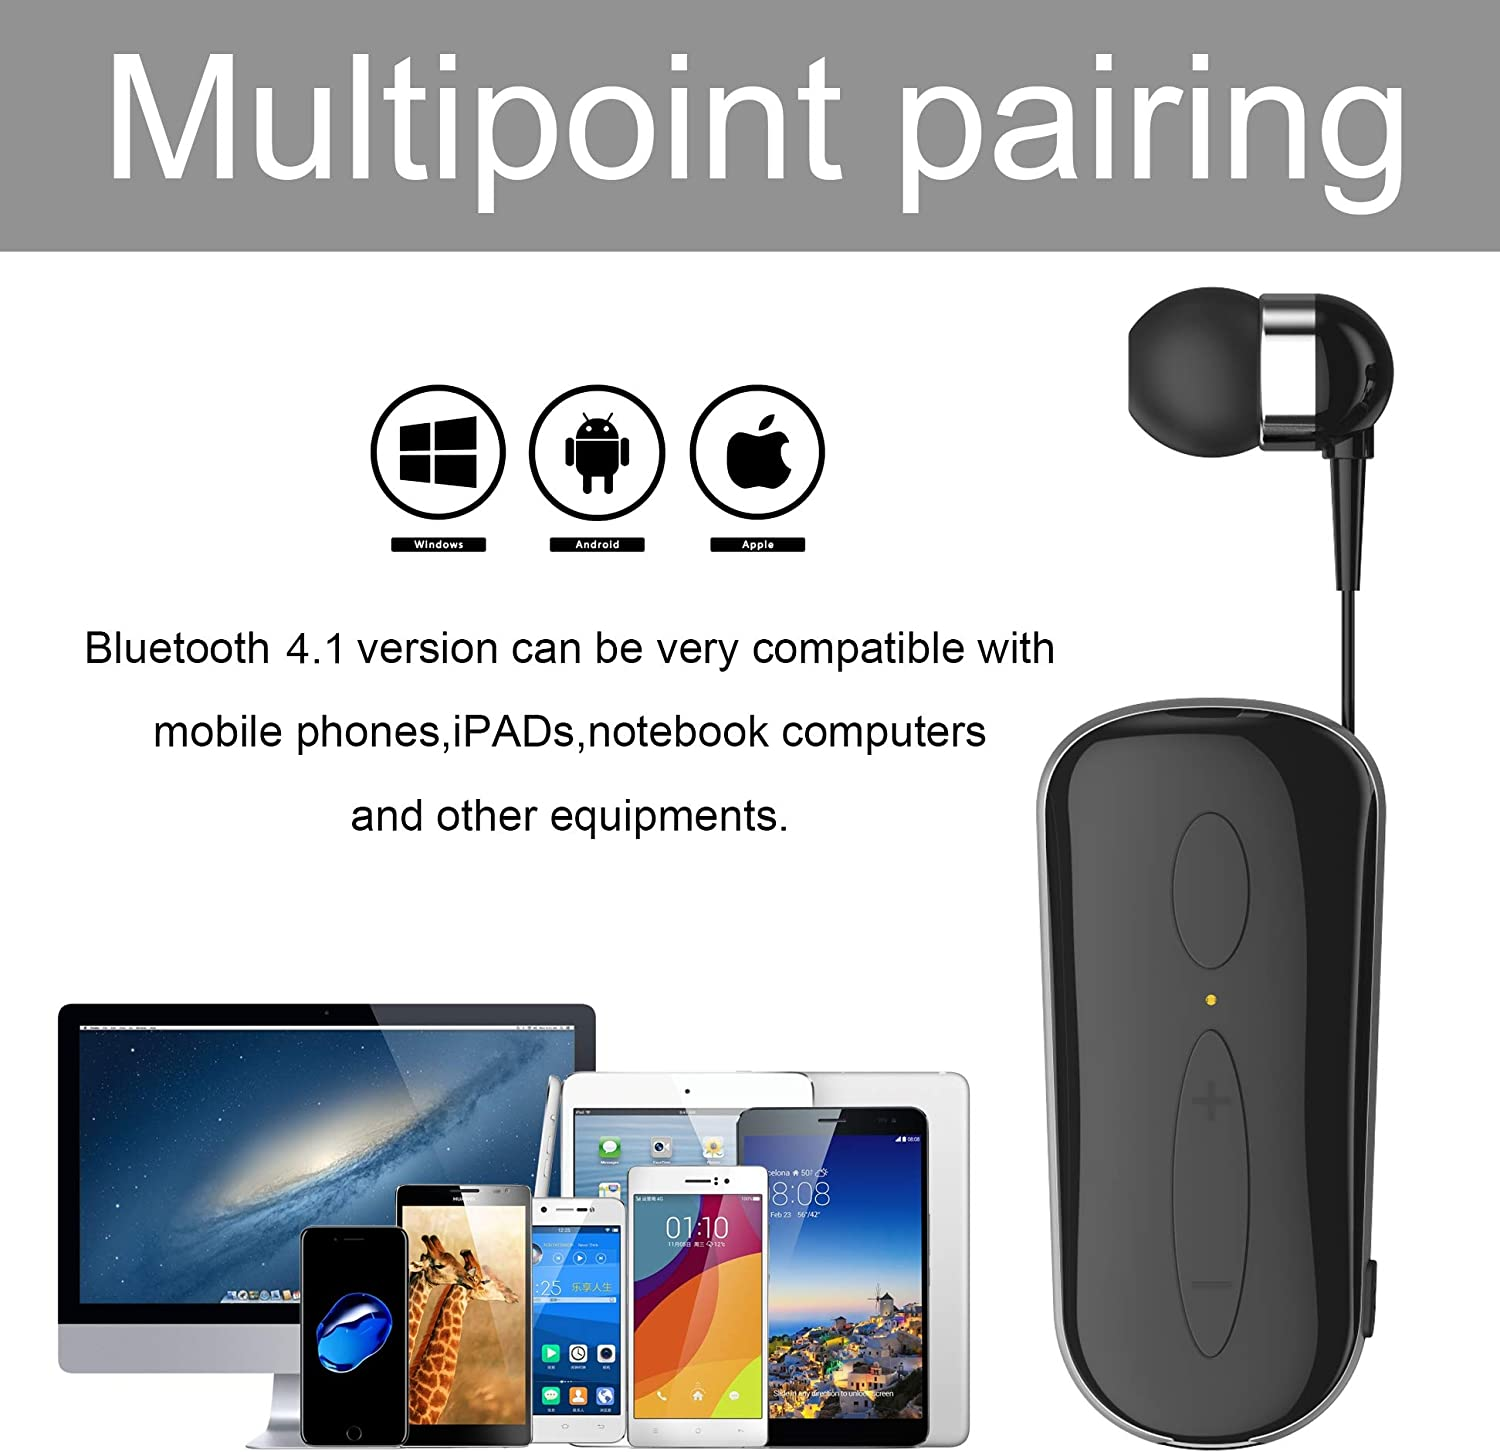 Retractable Bluetooth Headset,NILEWEI Wireless Earpiece with Microphone for Cell Phones//iPhone//Samsung//Lg,Handsfree Calling Noise Cancelling Technology Bluetooth V4.1 Earphones for Trucker Drivers